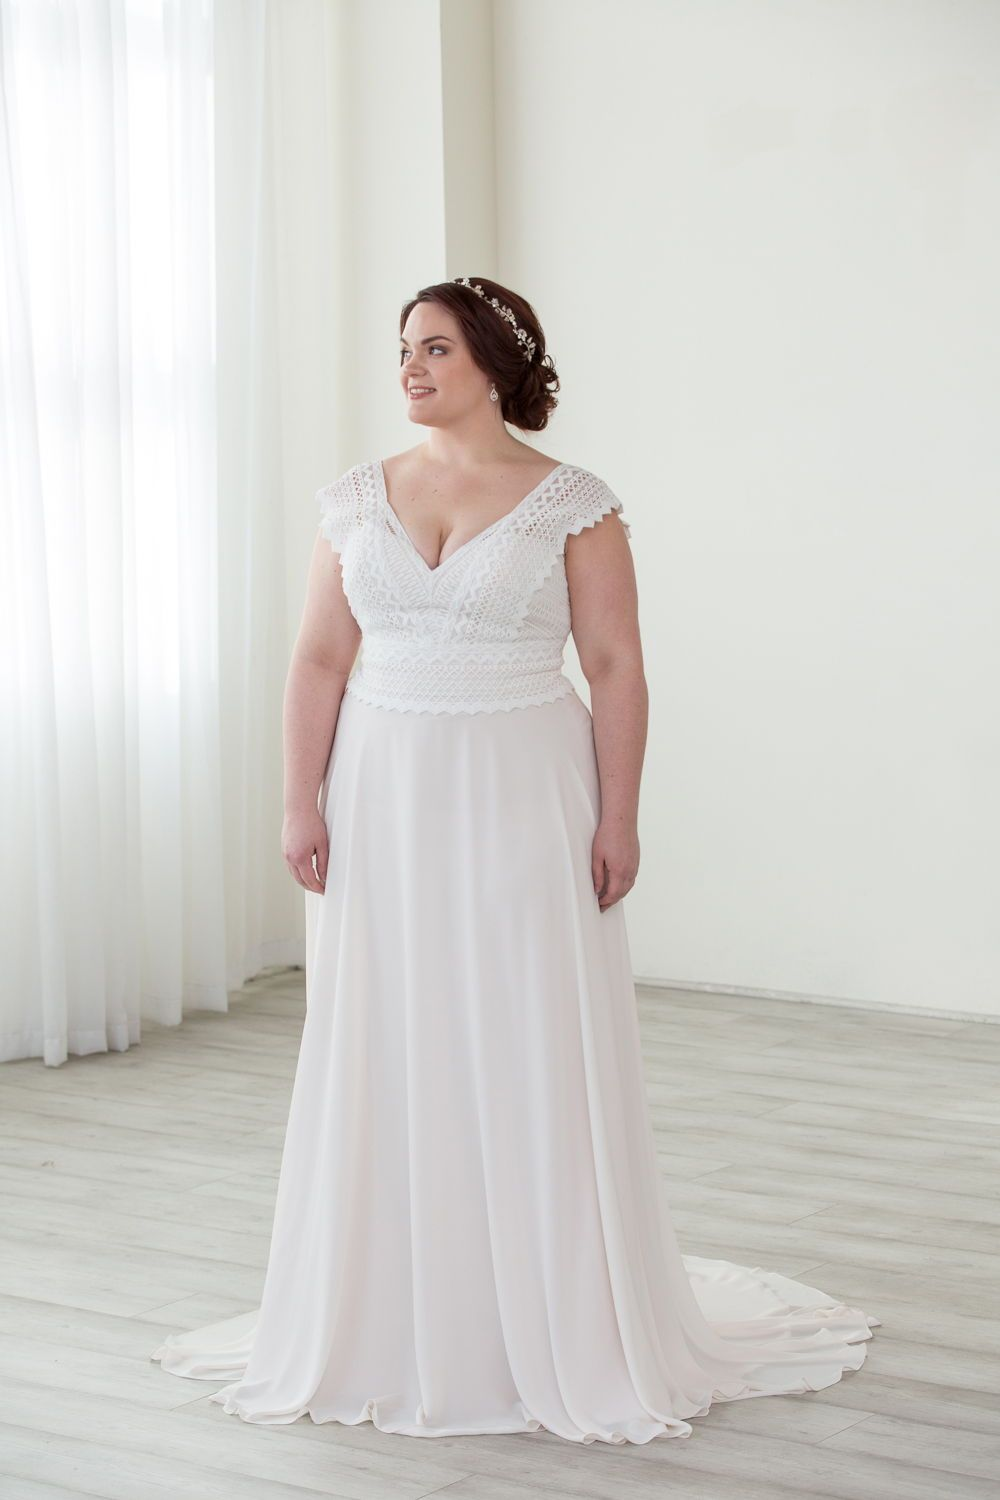 A Line Wedding Dress Chiffon Skirt And Lace Details On Top Lillian West Boho Vibes In Th Plus Size Wedding Gowns A Line Wedding Dress Plus Size Blush Dress [ 1500 x 1000 Pixel ]